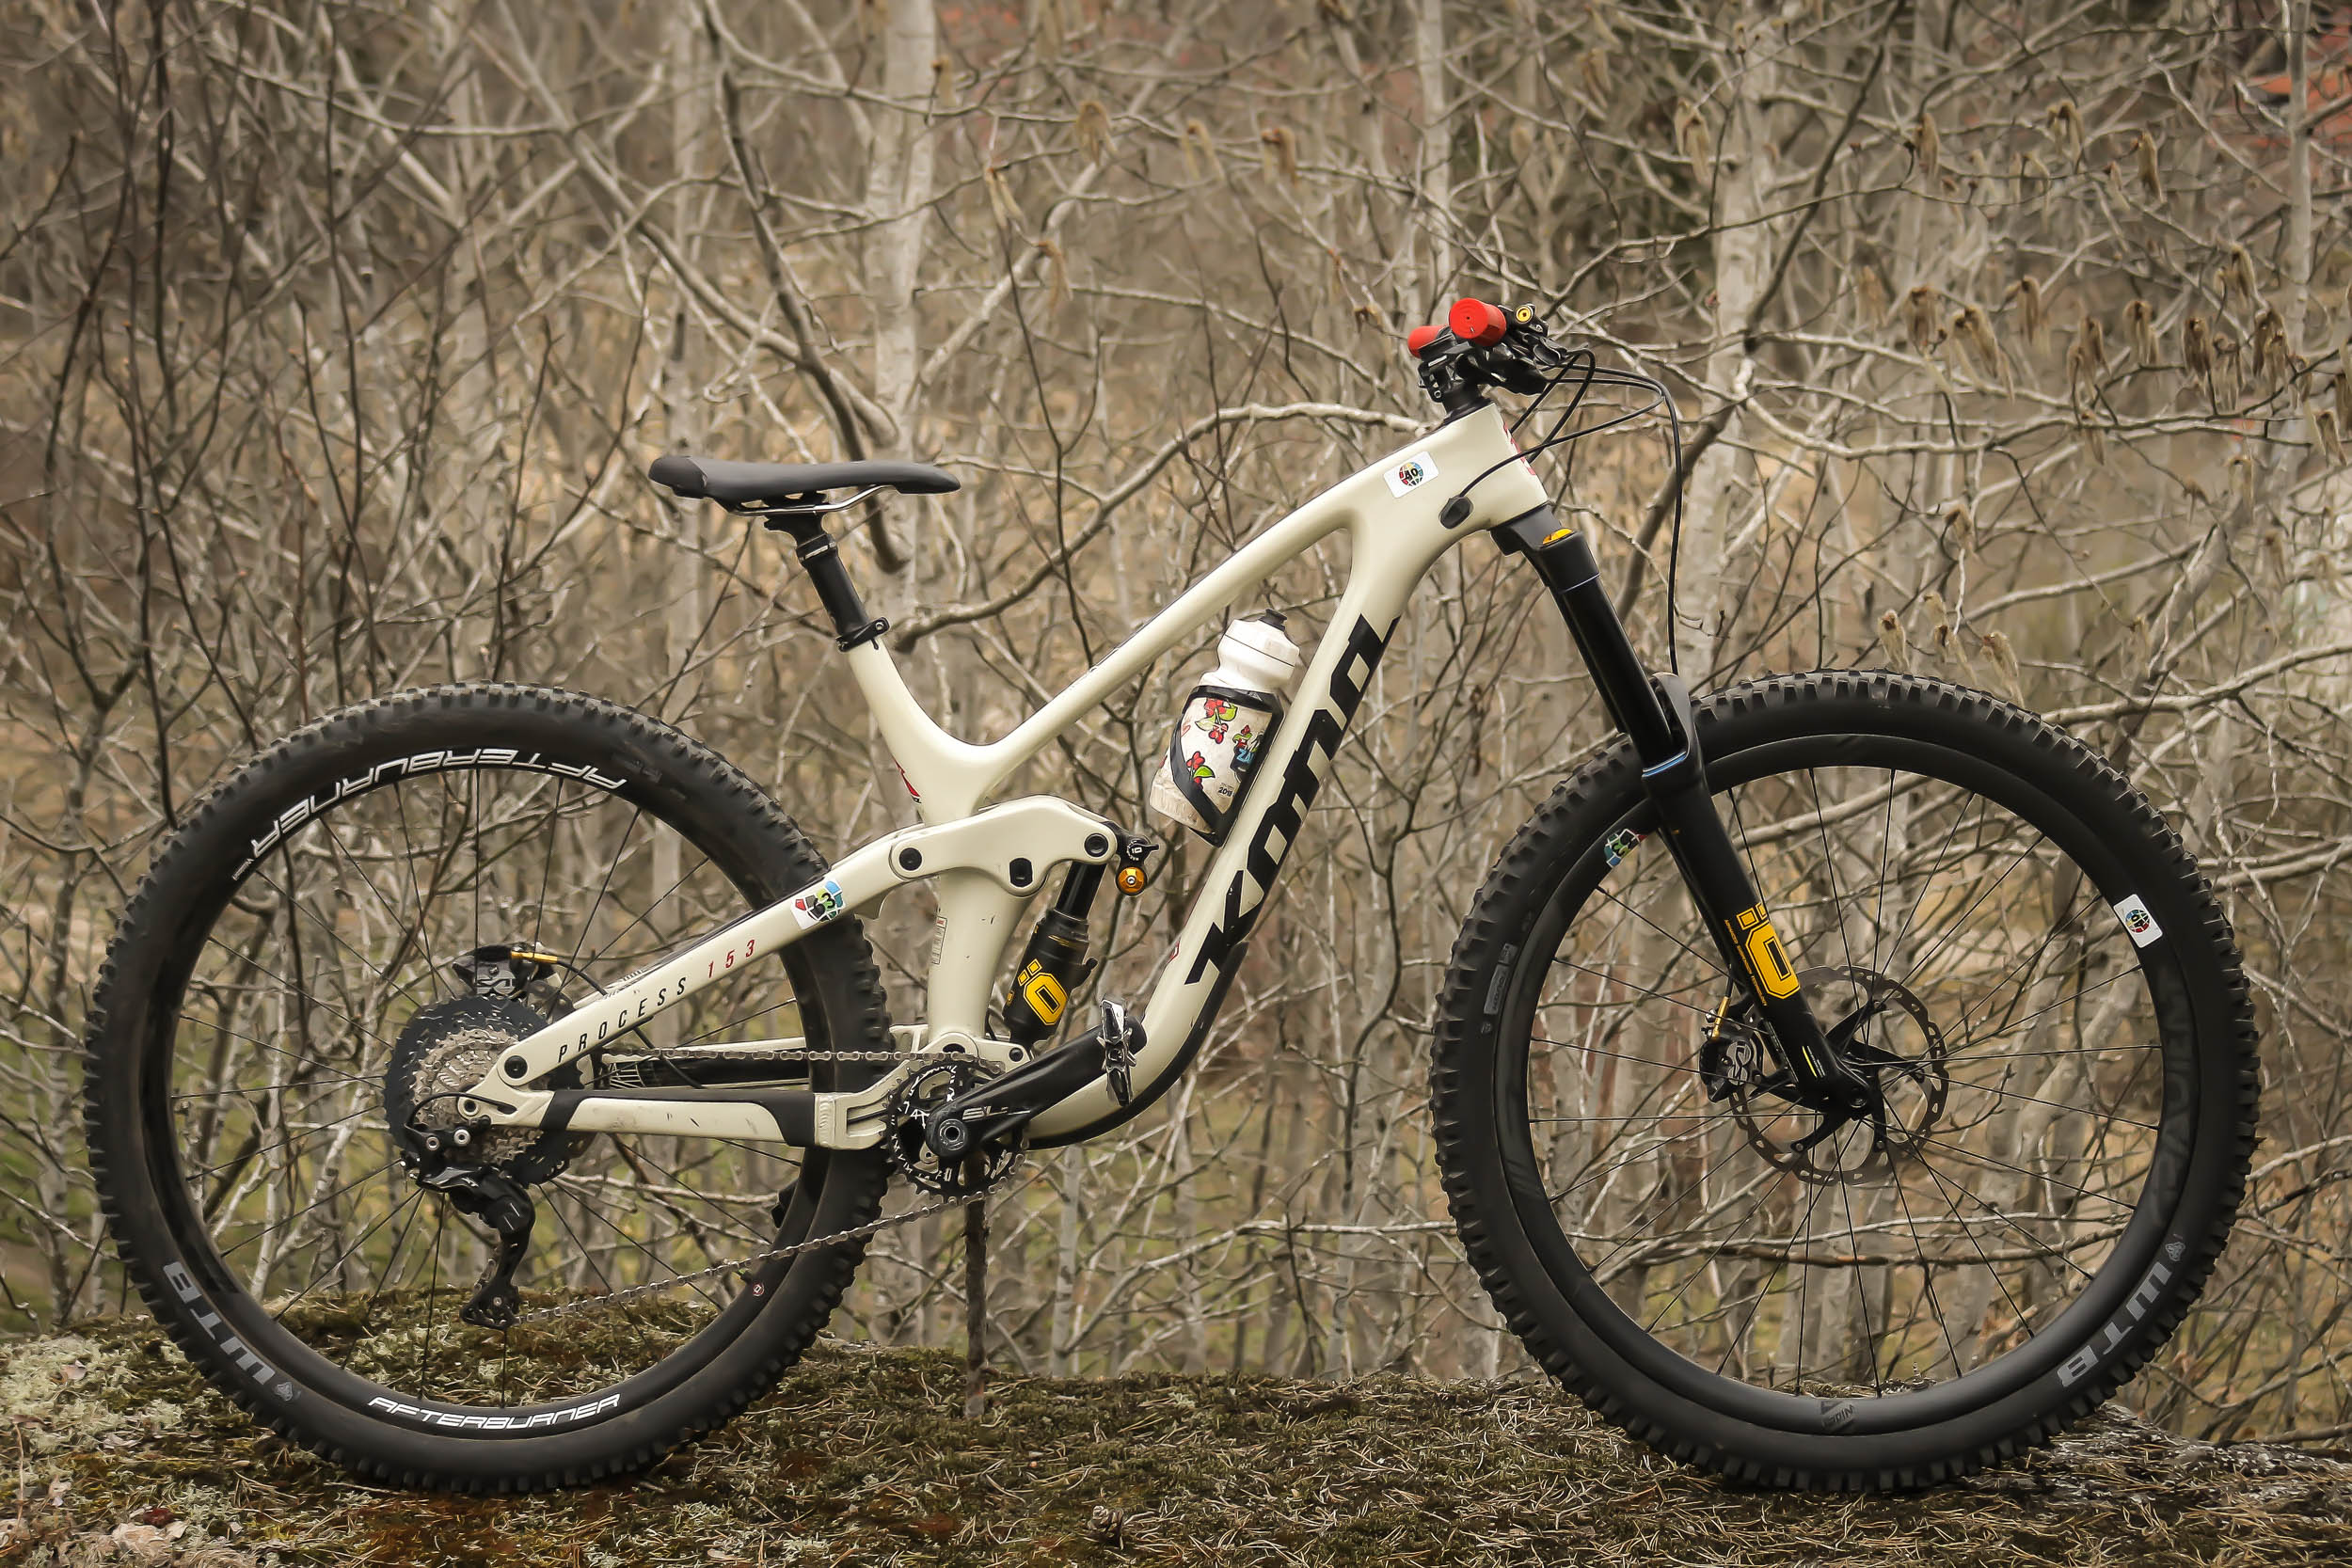 Kona Dream Builds: Alexander's Process CR DL 29er is Ready for Battle